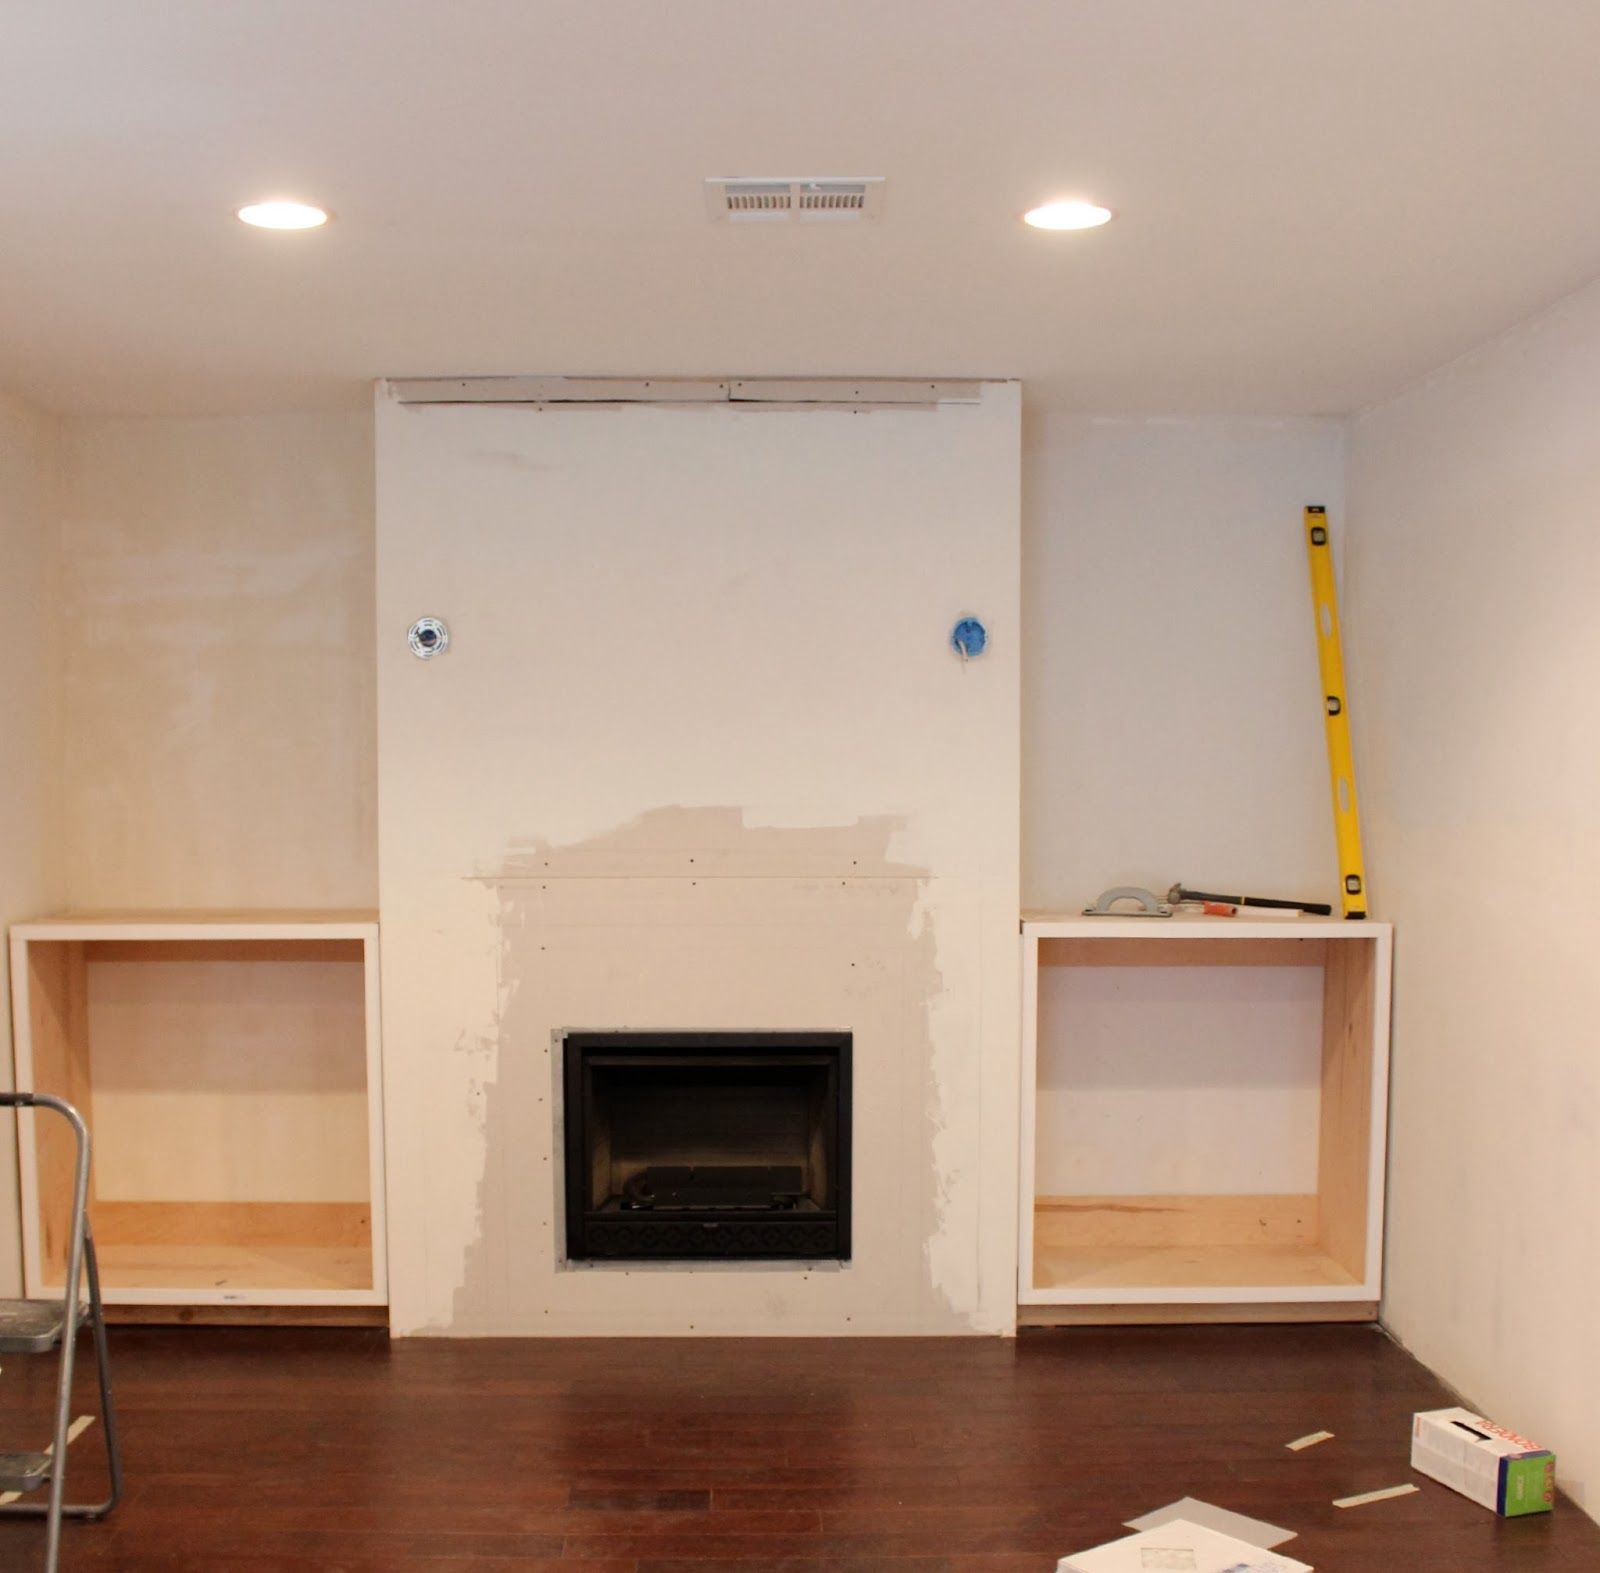 Cabinets And Fireplace Surrounds: Built In Fireplace And Cabinets Tutorial